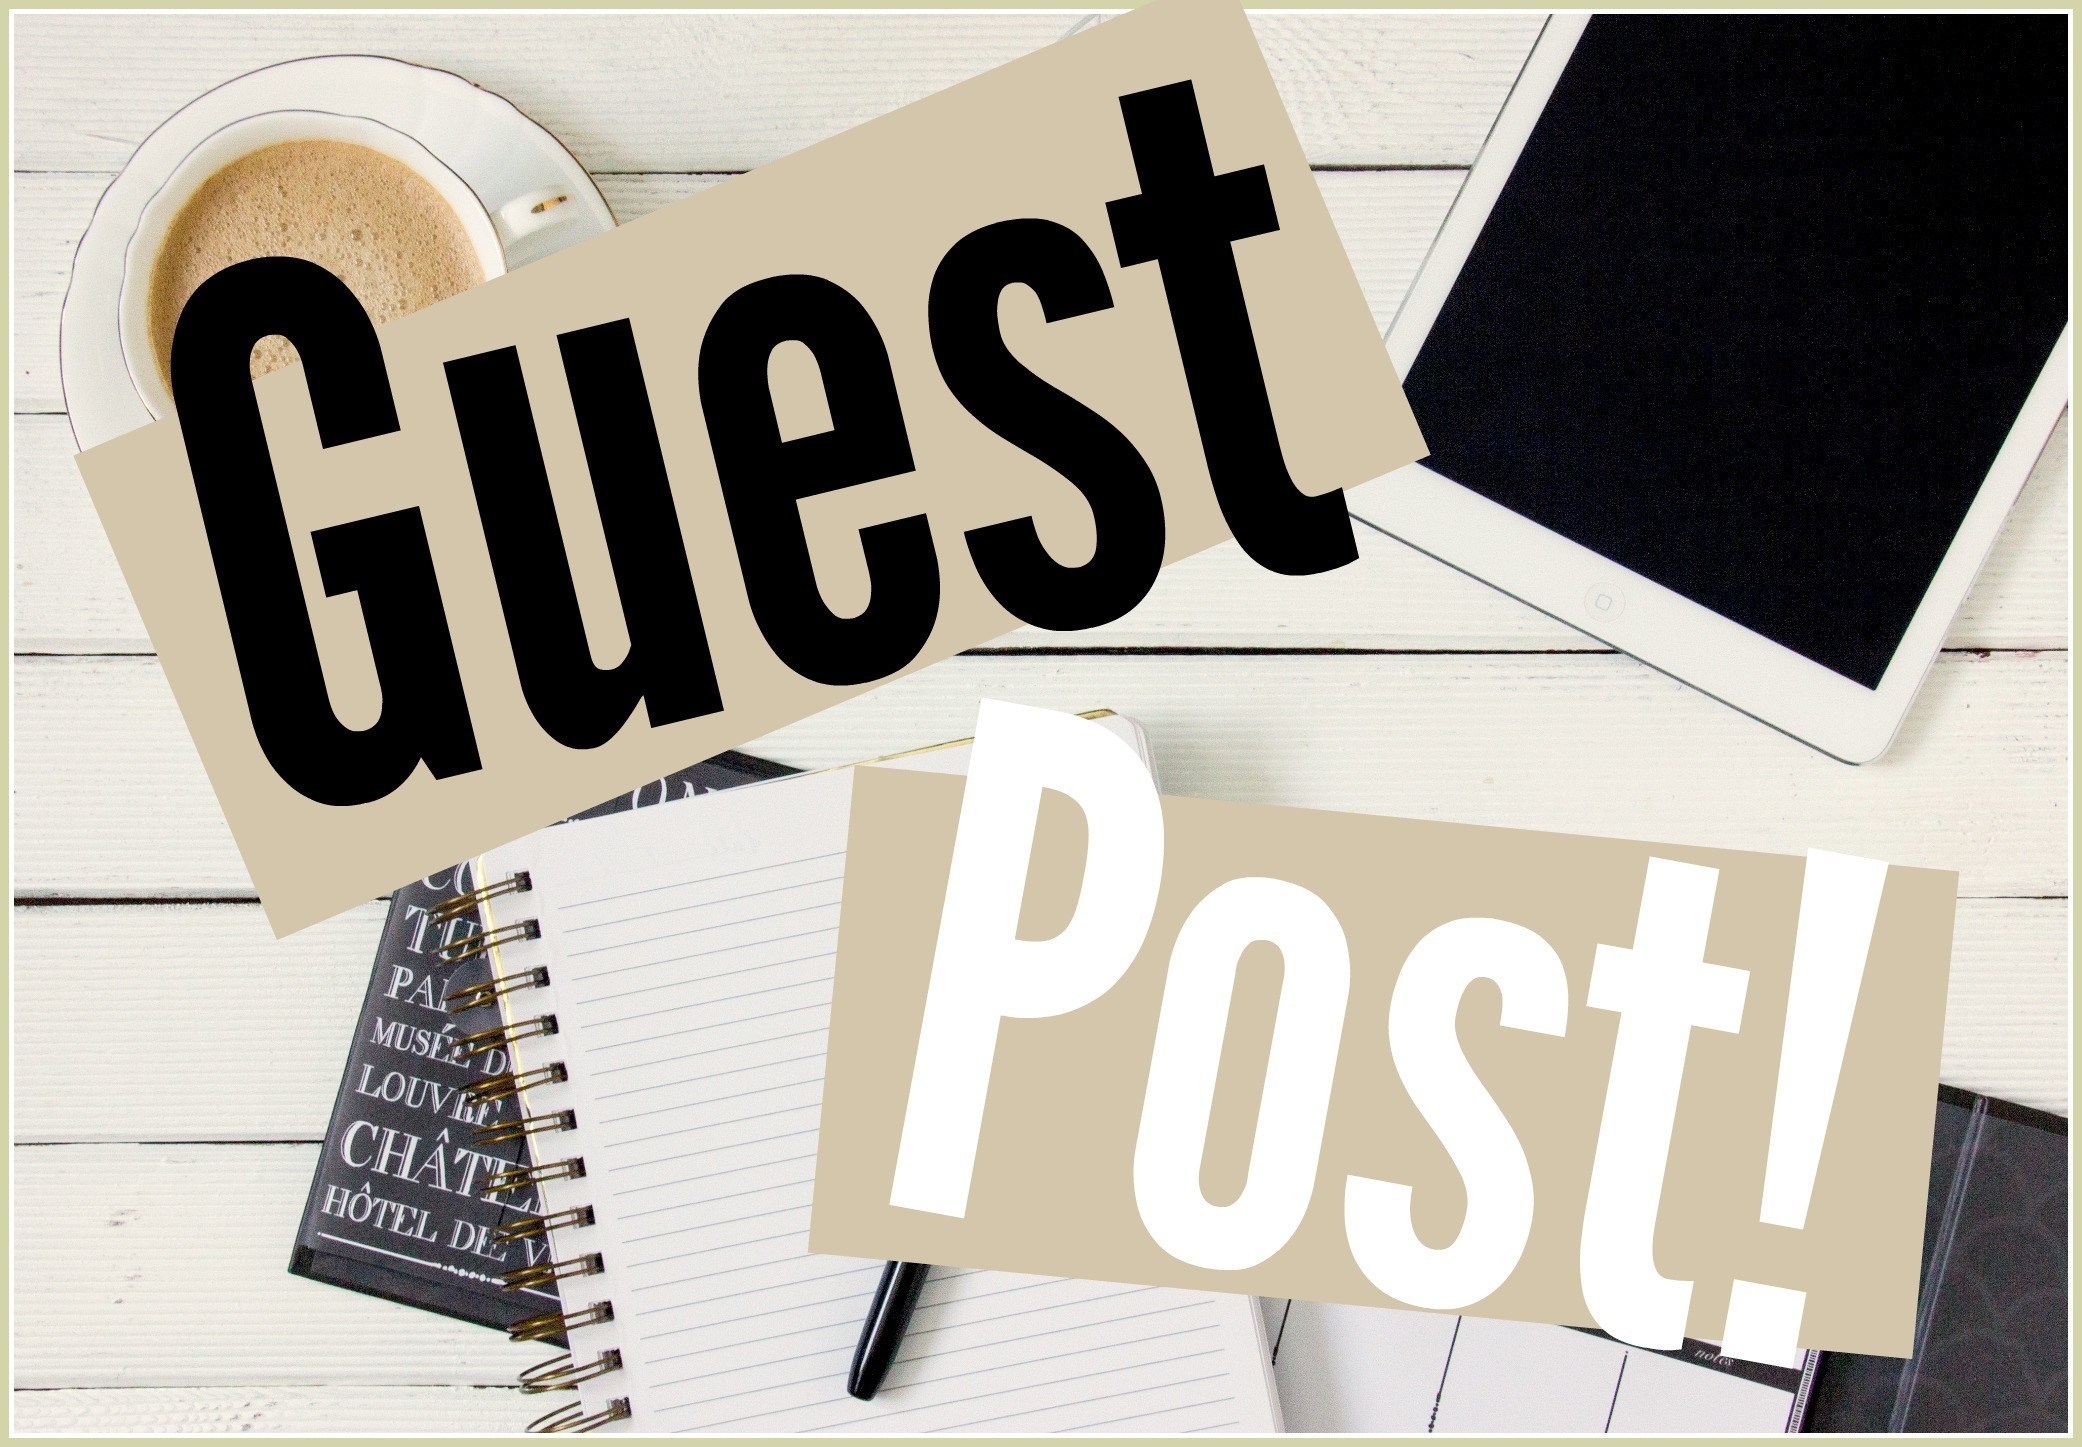 I well do guest post websites dr 50+ niches one post